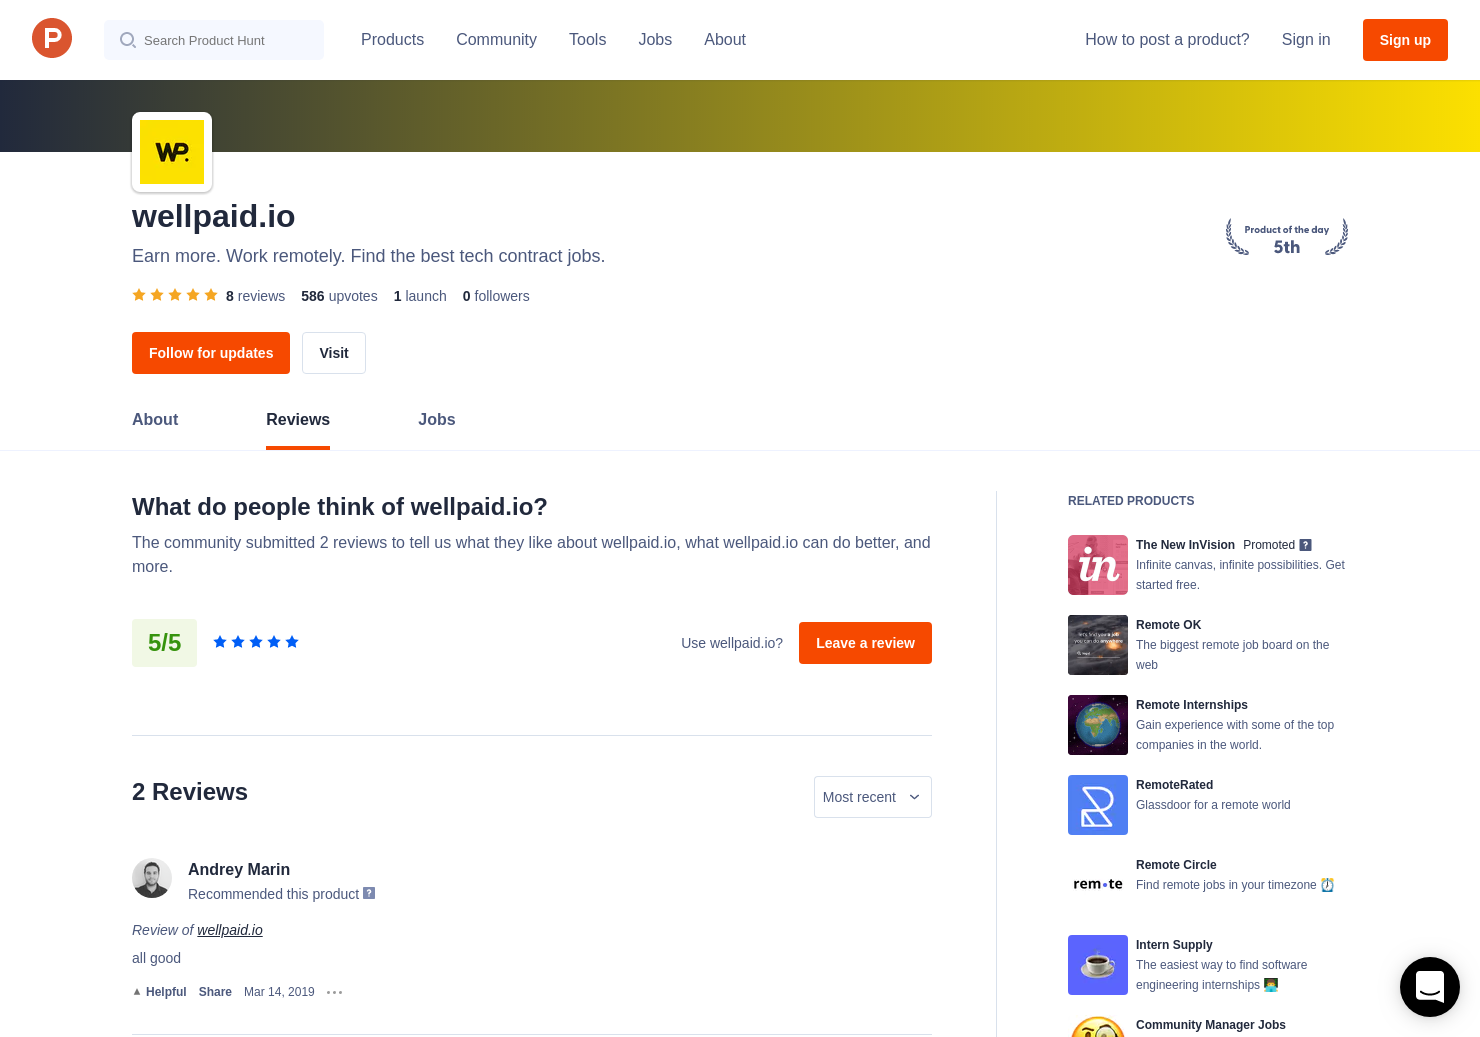 Andrey Marin's review of wellpaid io | Product Hunt